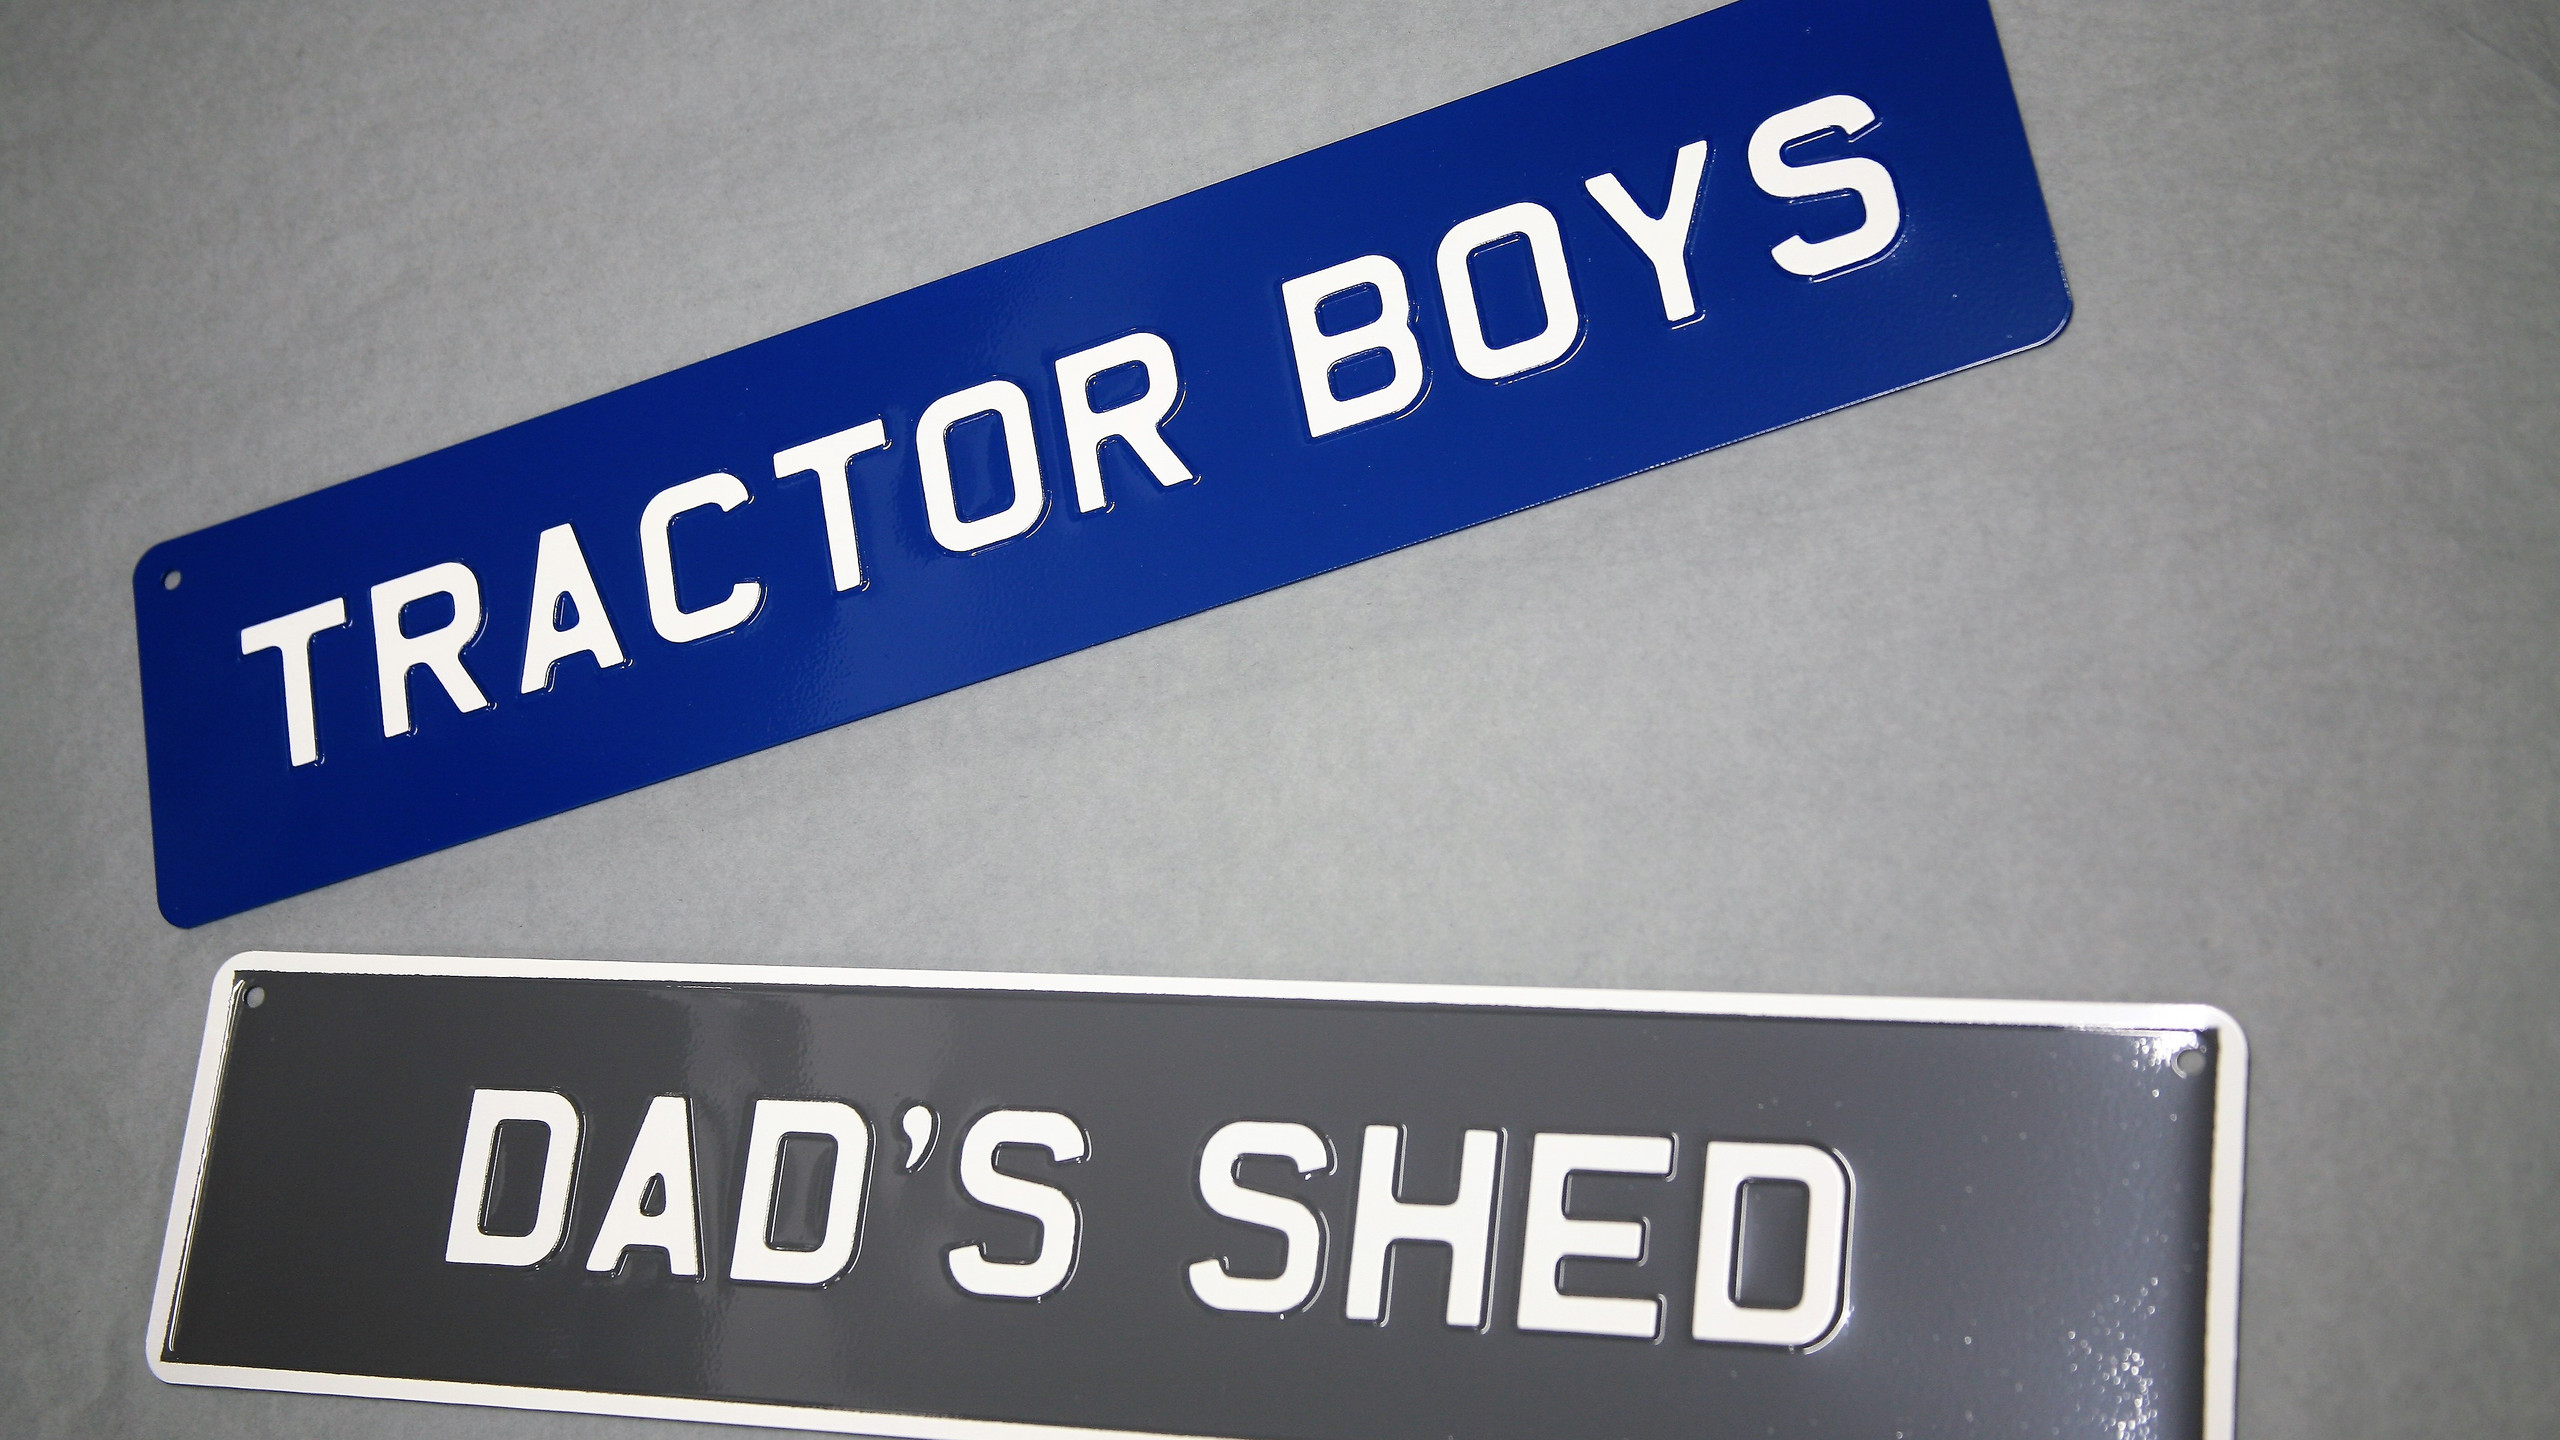 A gift for tractor boys